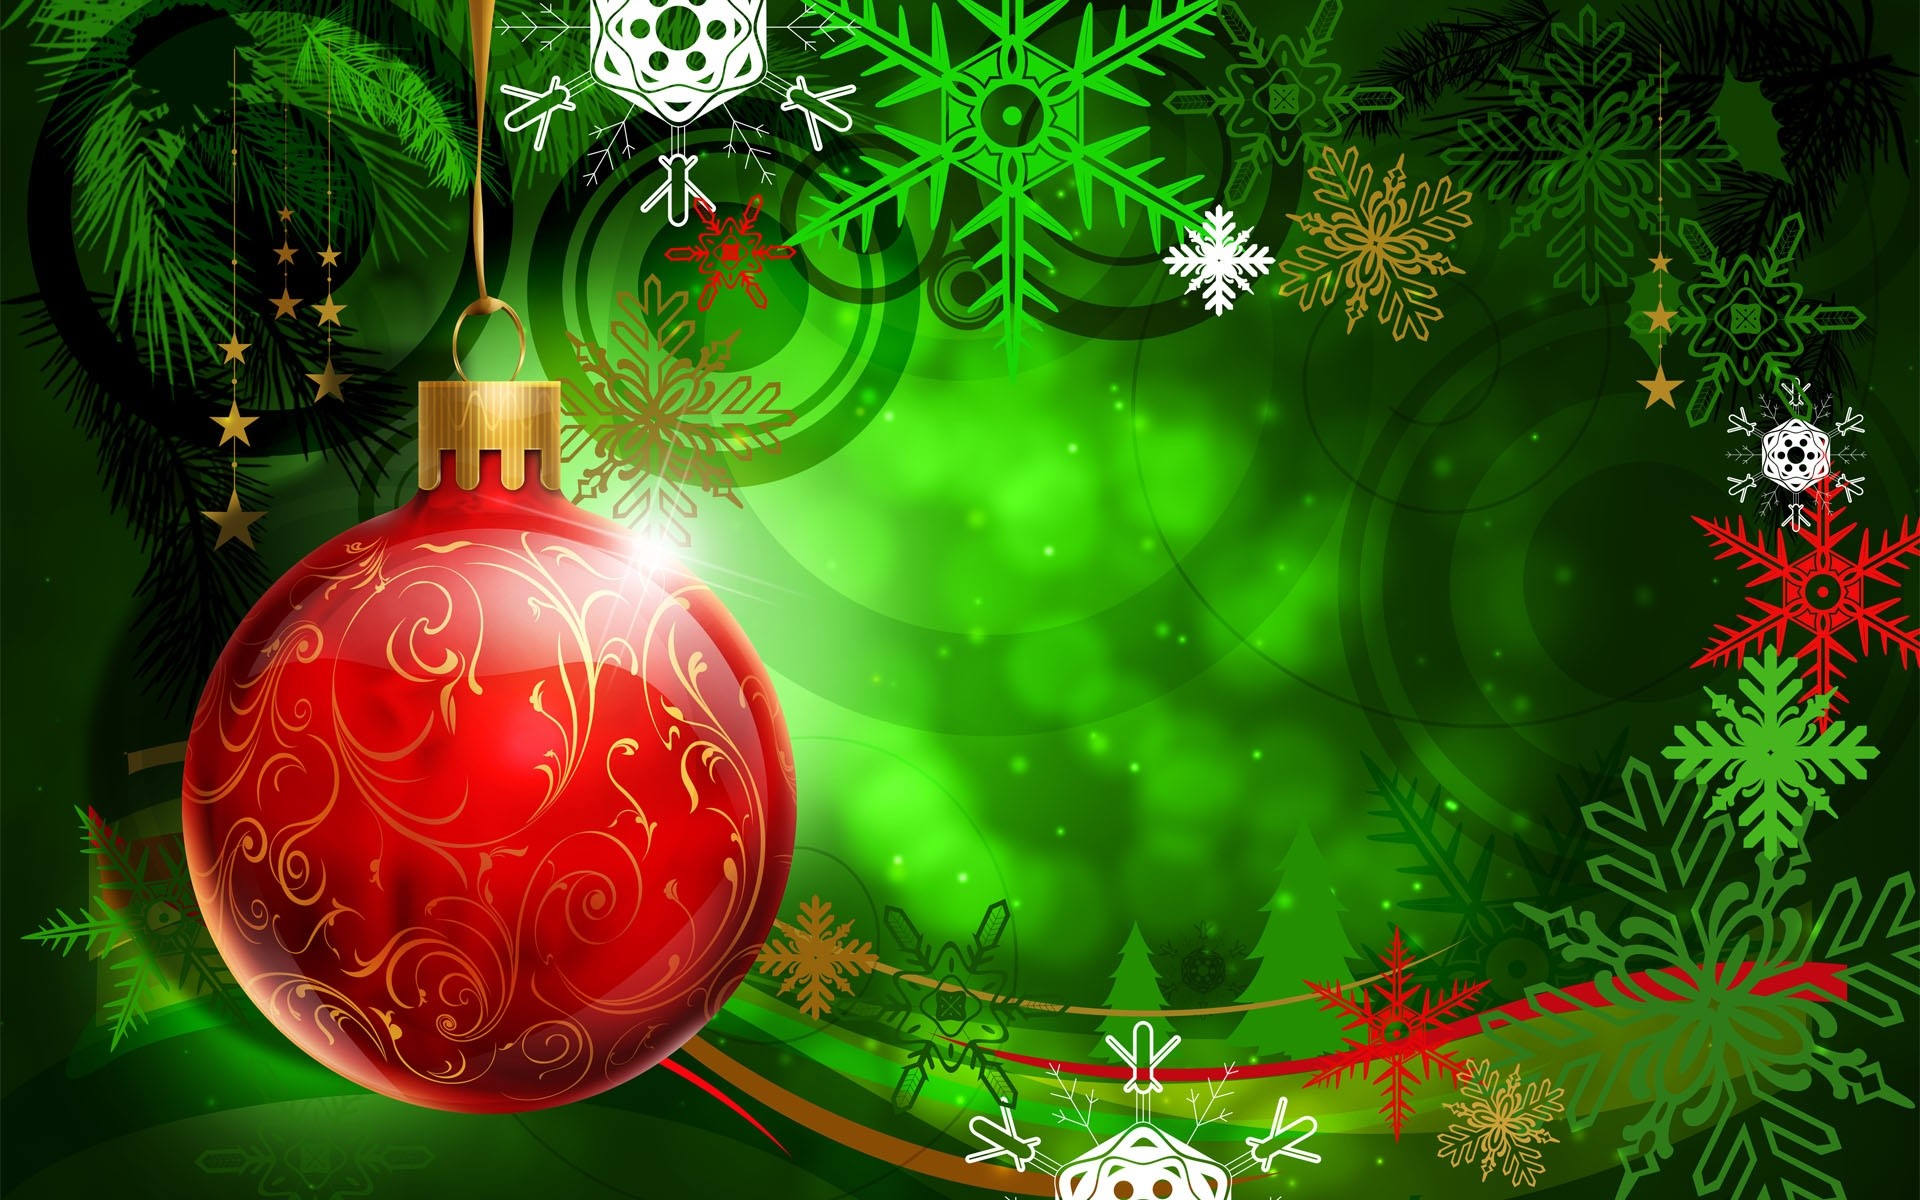 Wallpaper A colorful Christmas